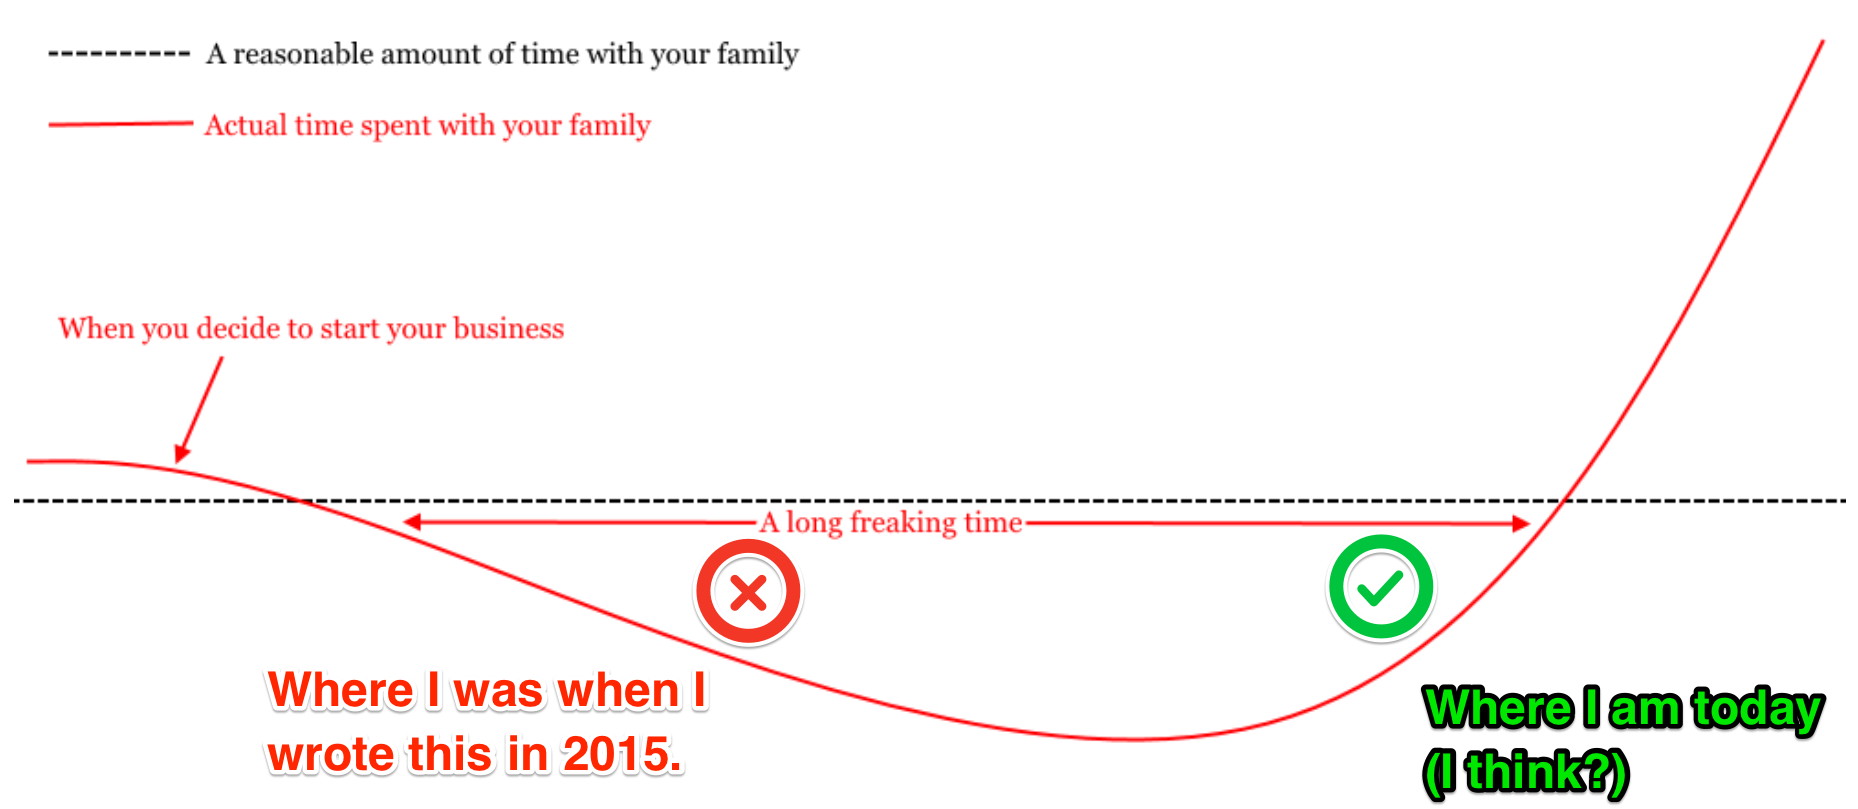 family and business timeline